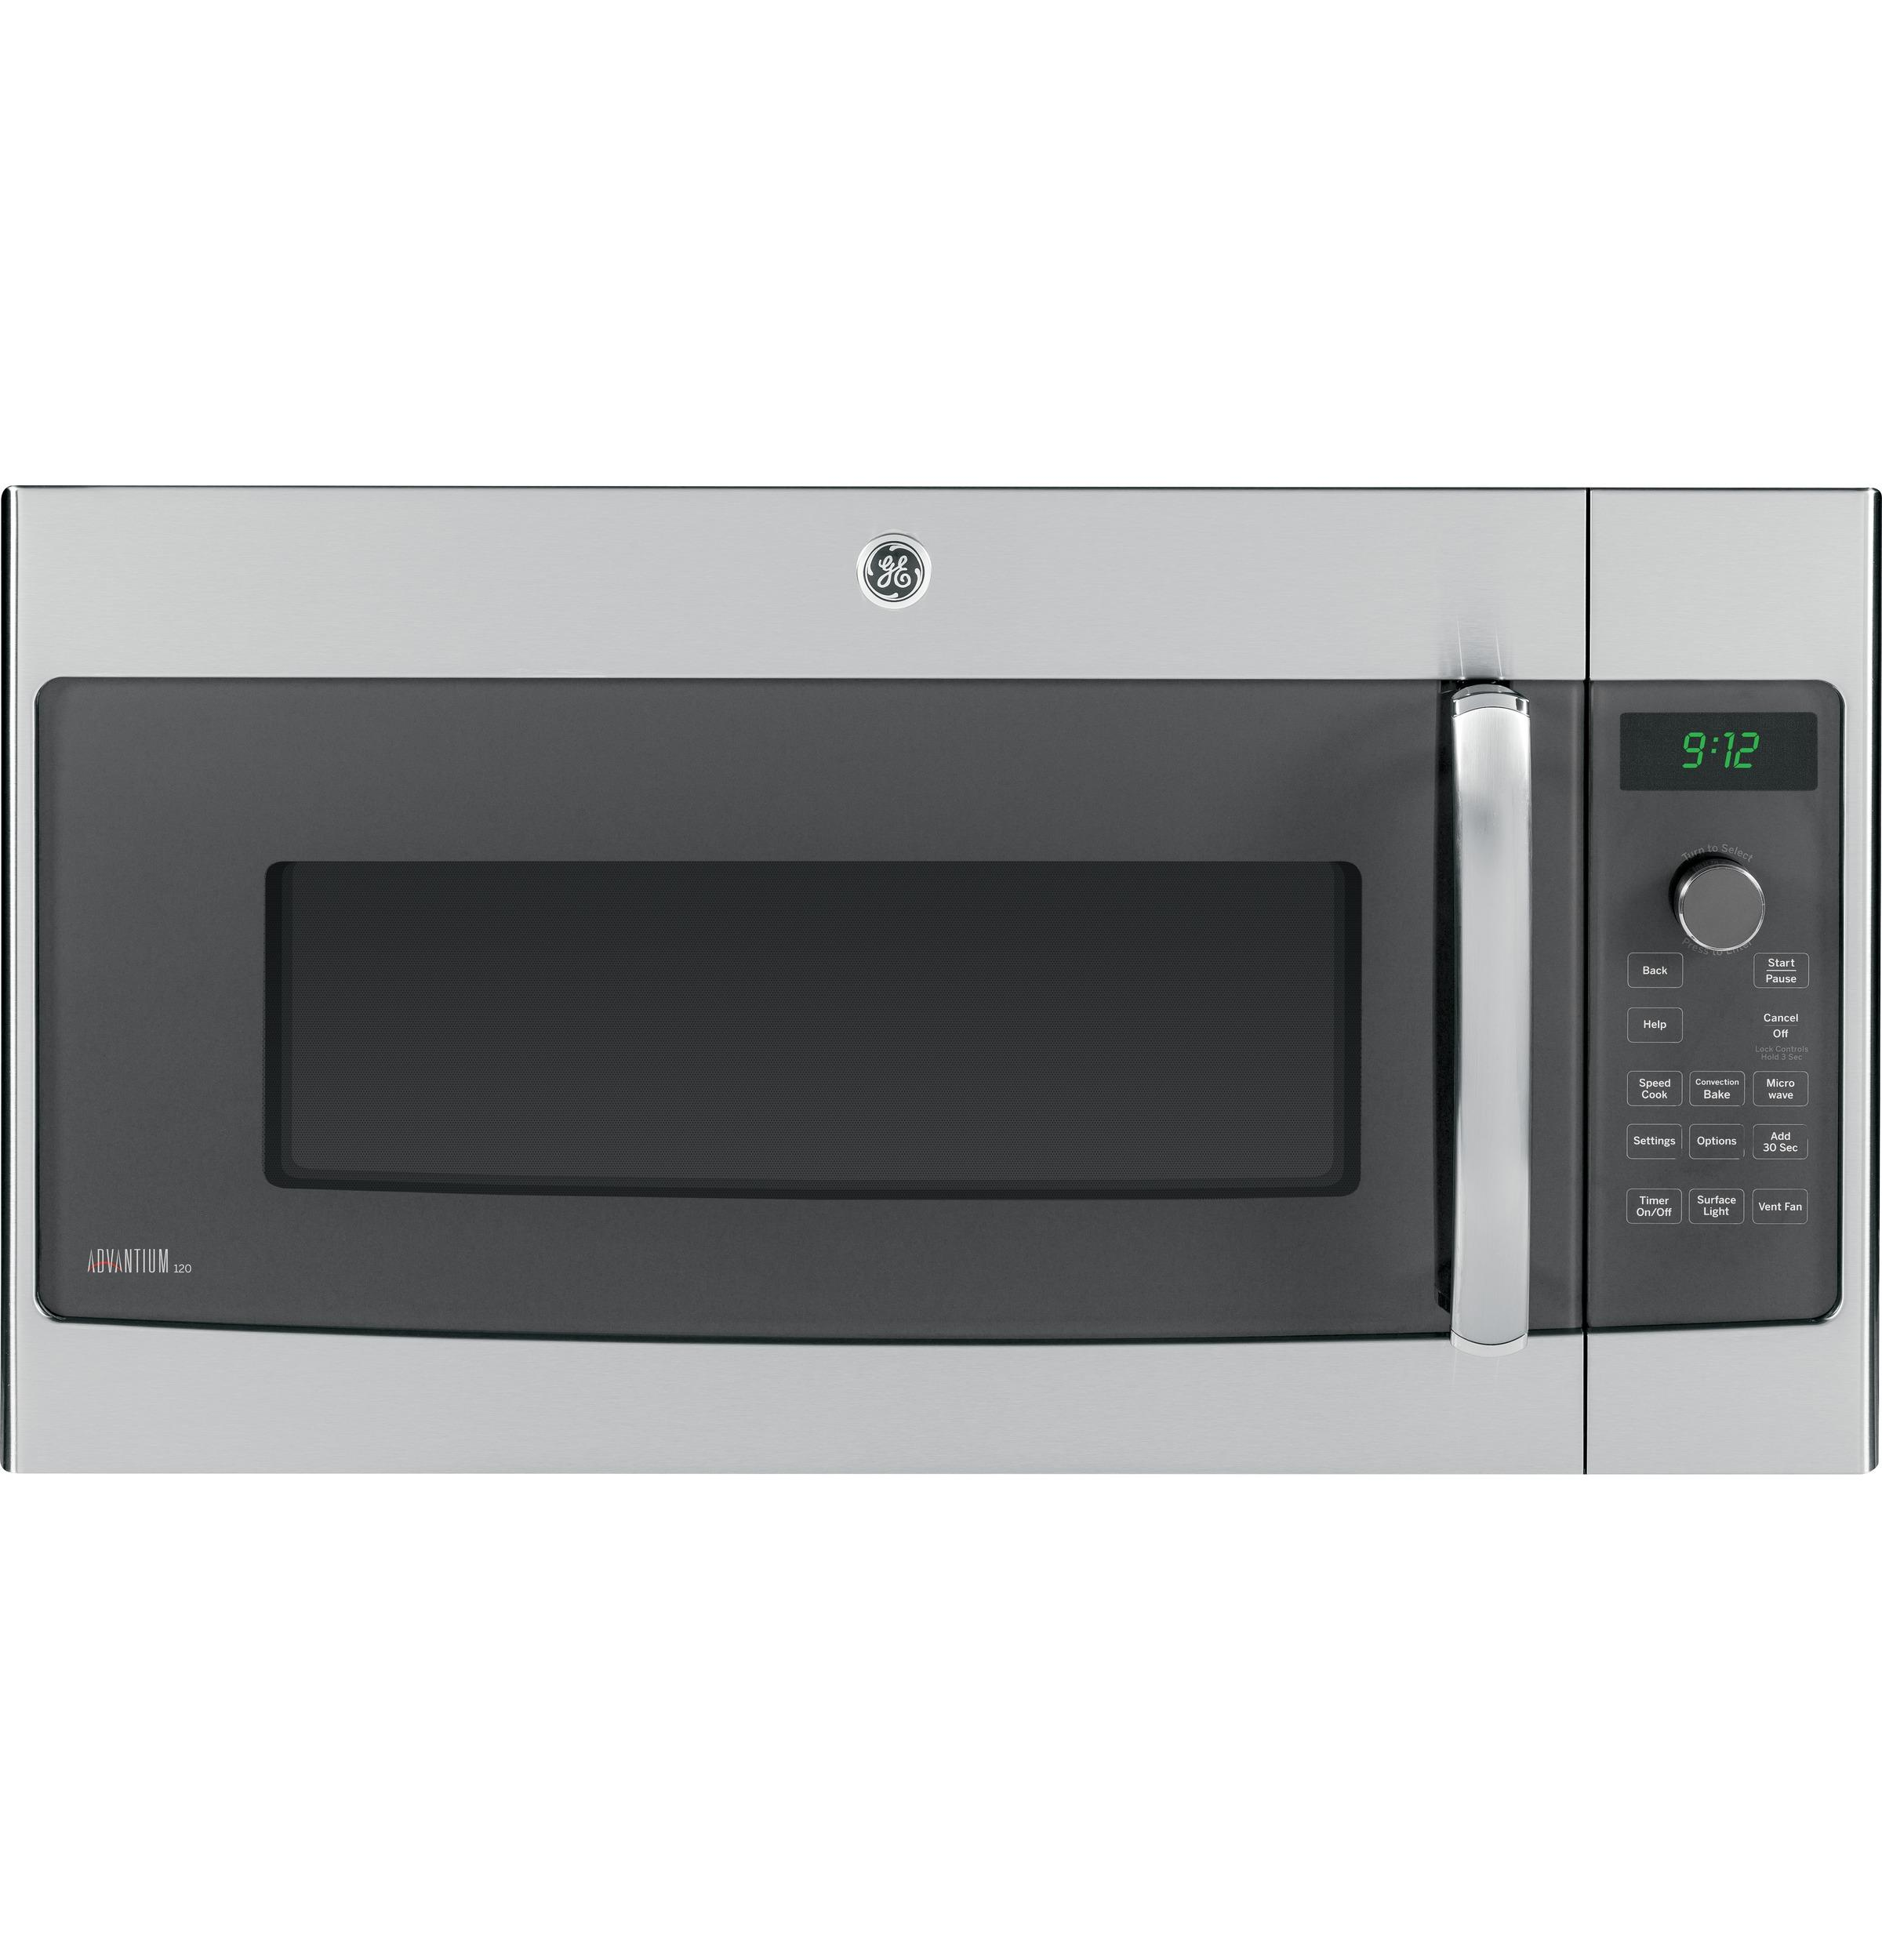 """GE Appliances Electric Wall Oven 30"""" Over-the-Range 4-in-1 Electric Oven - Item Number: PSA9120SFSS"""